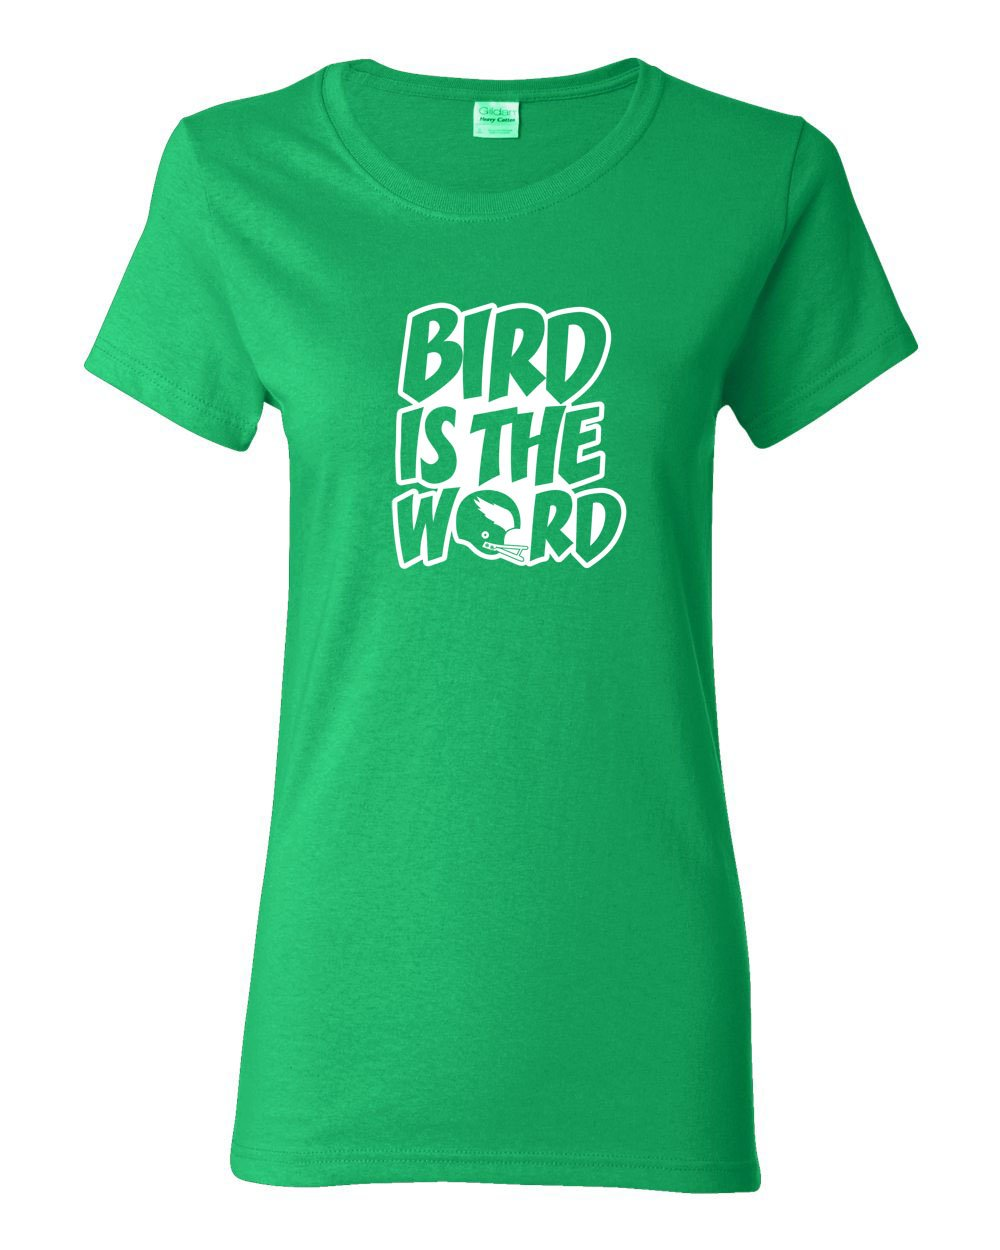 Bird is the Word LADIES Missy-Fit T-Shirt